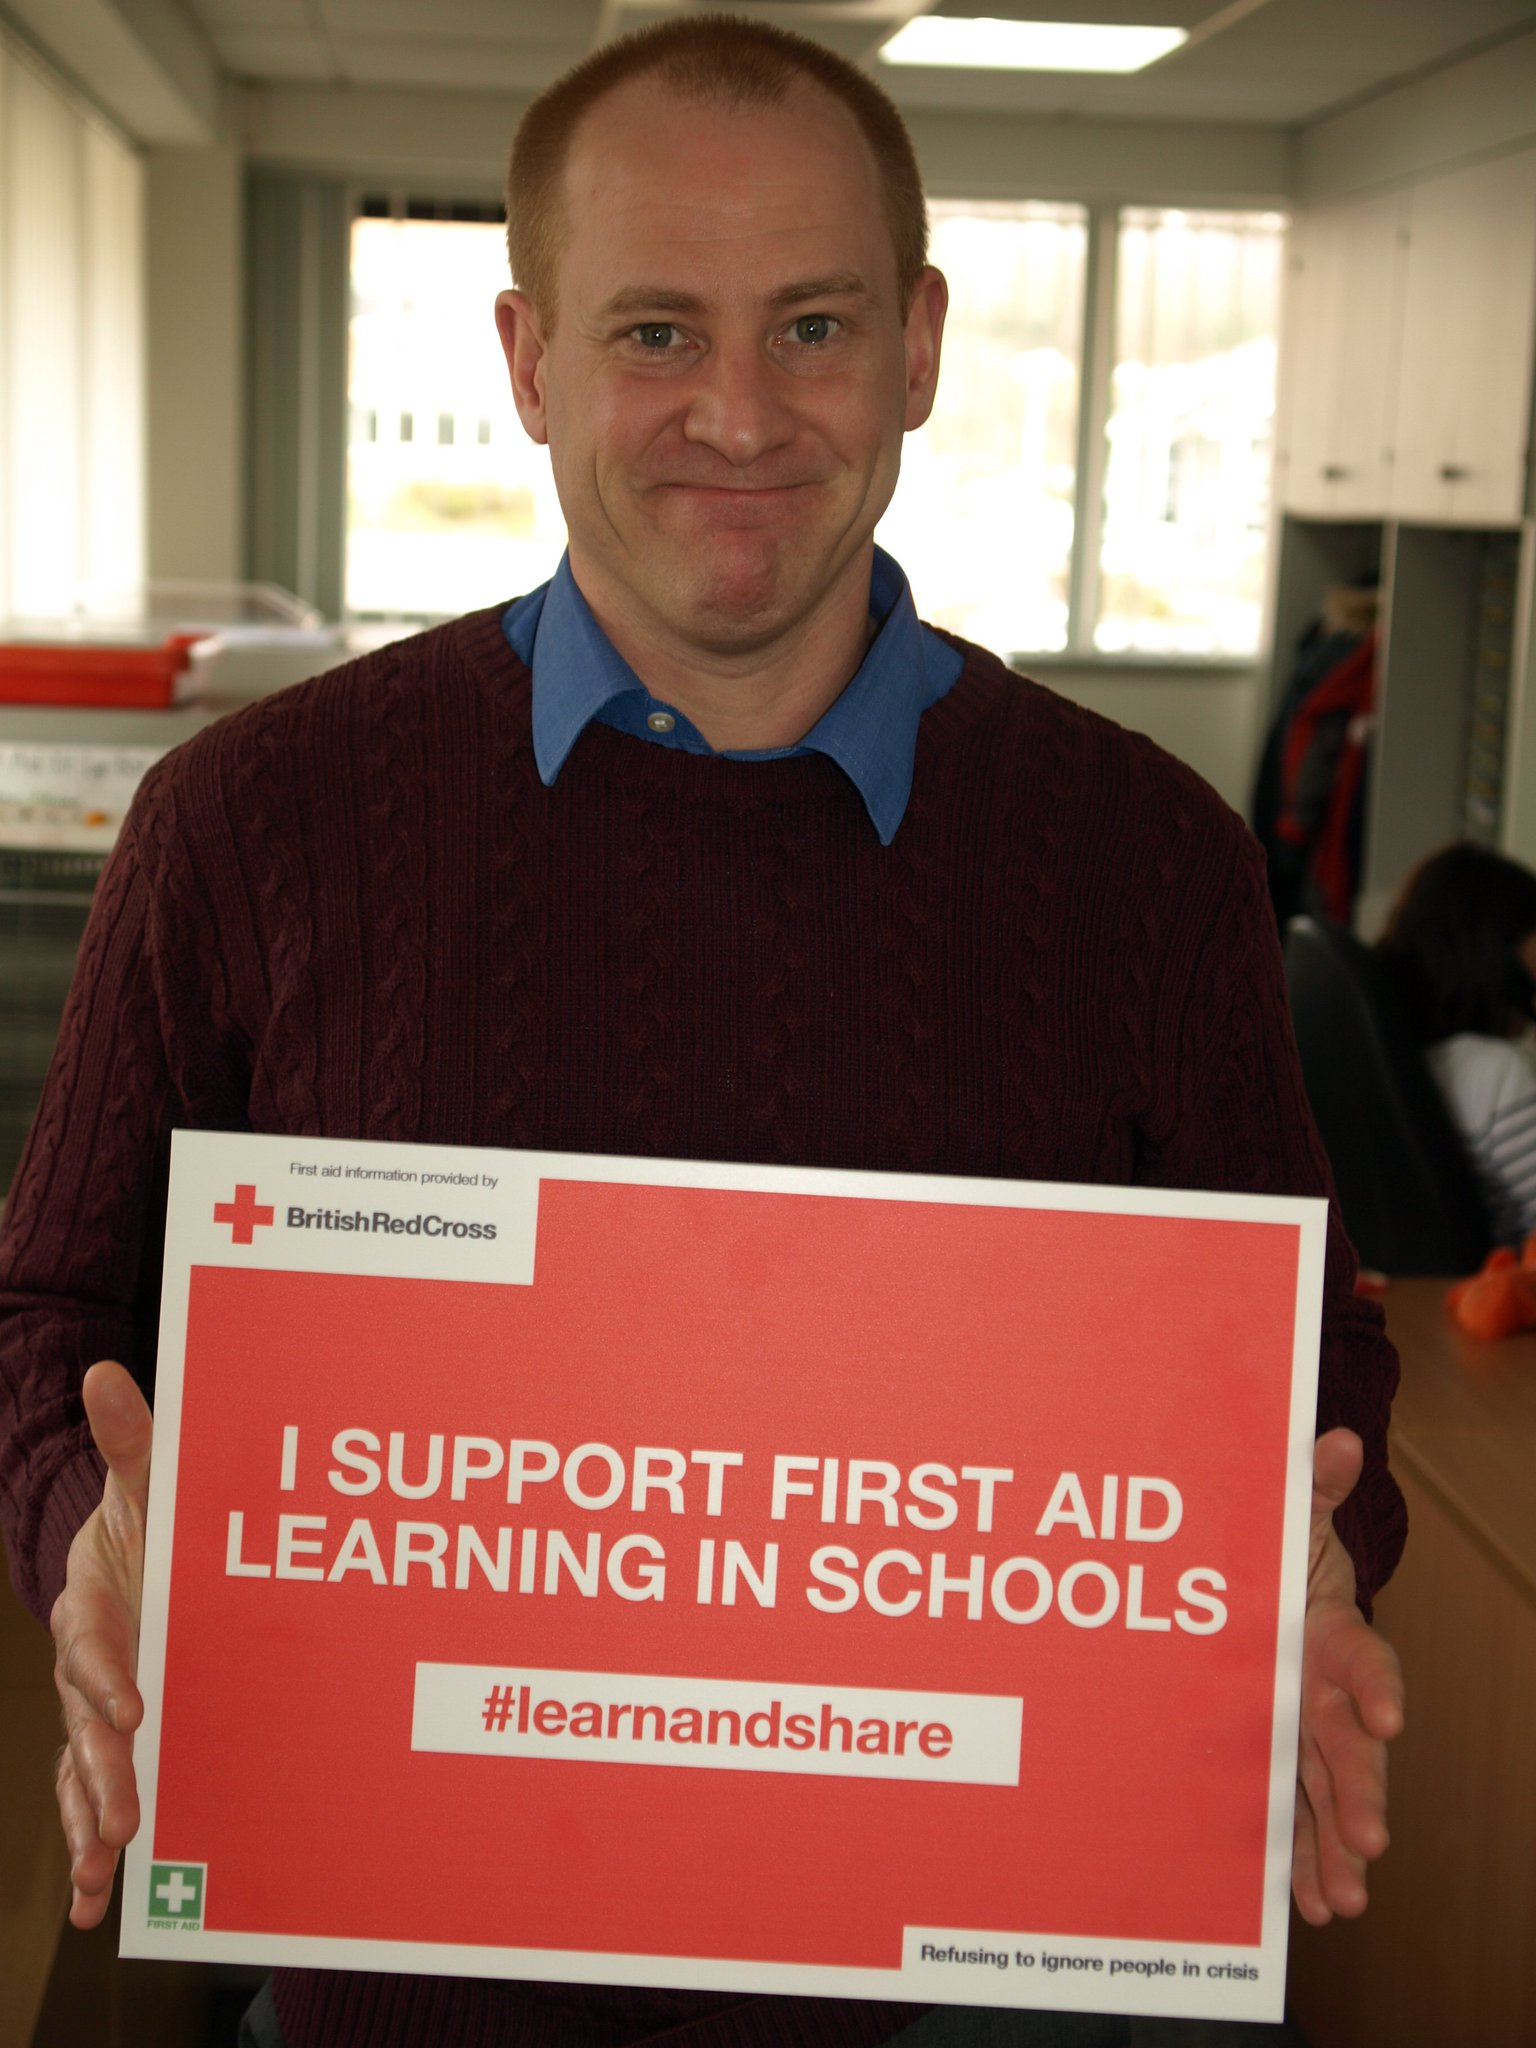 Andrew Finucane supports first aid learning in schools in Wales.  #lifesavingskills are essential so please #learnandshare. https://t.co/UvSKIG2fAB